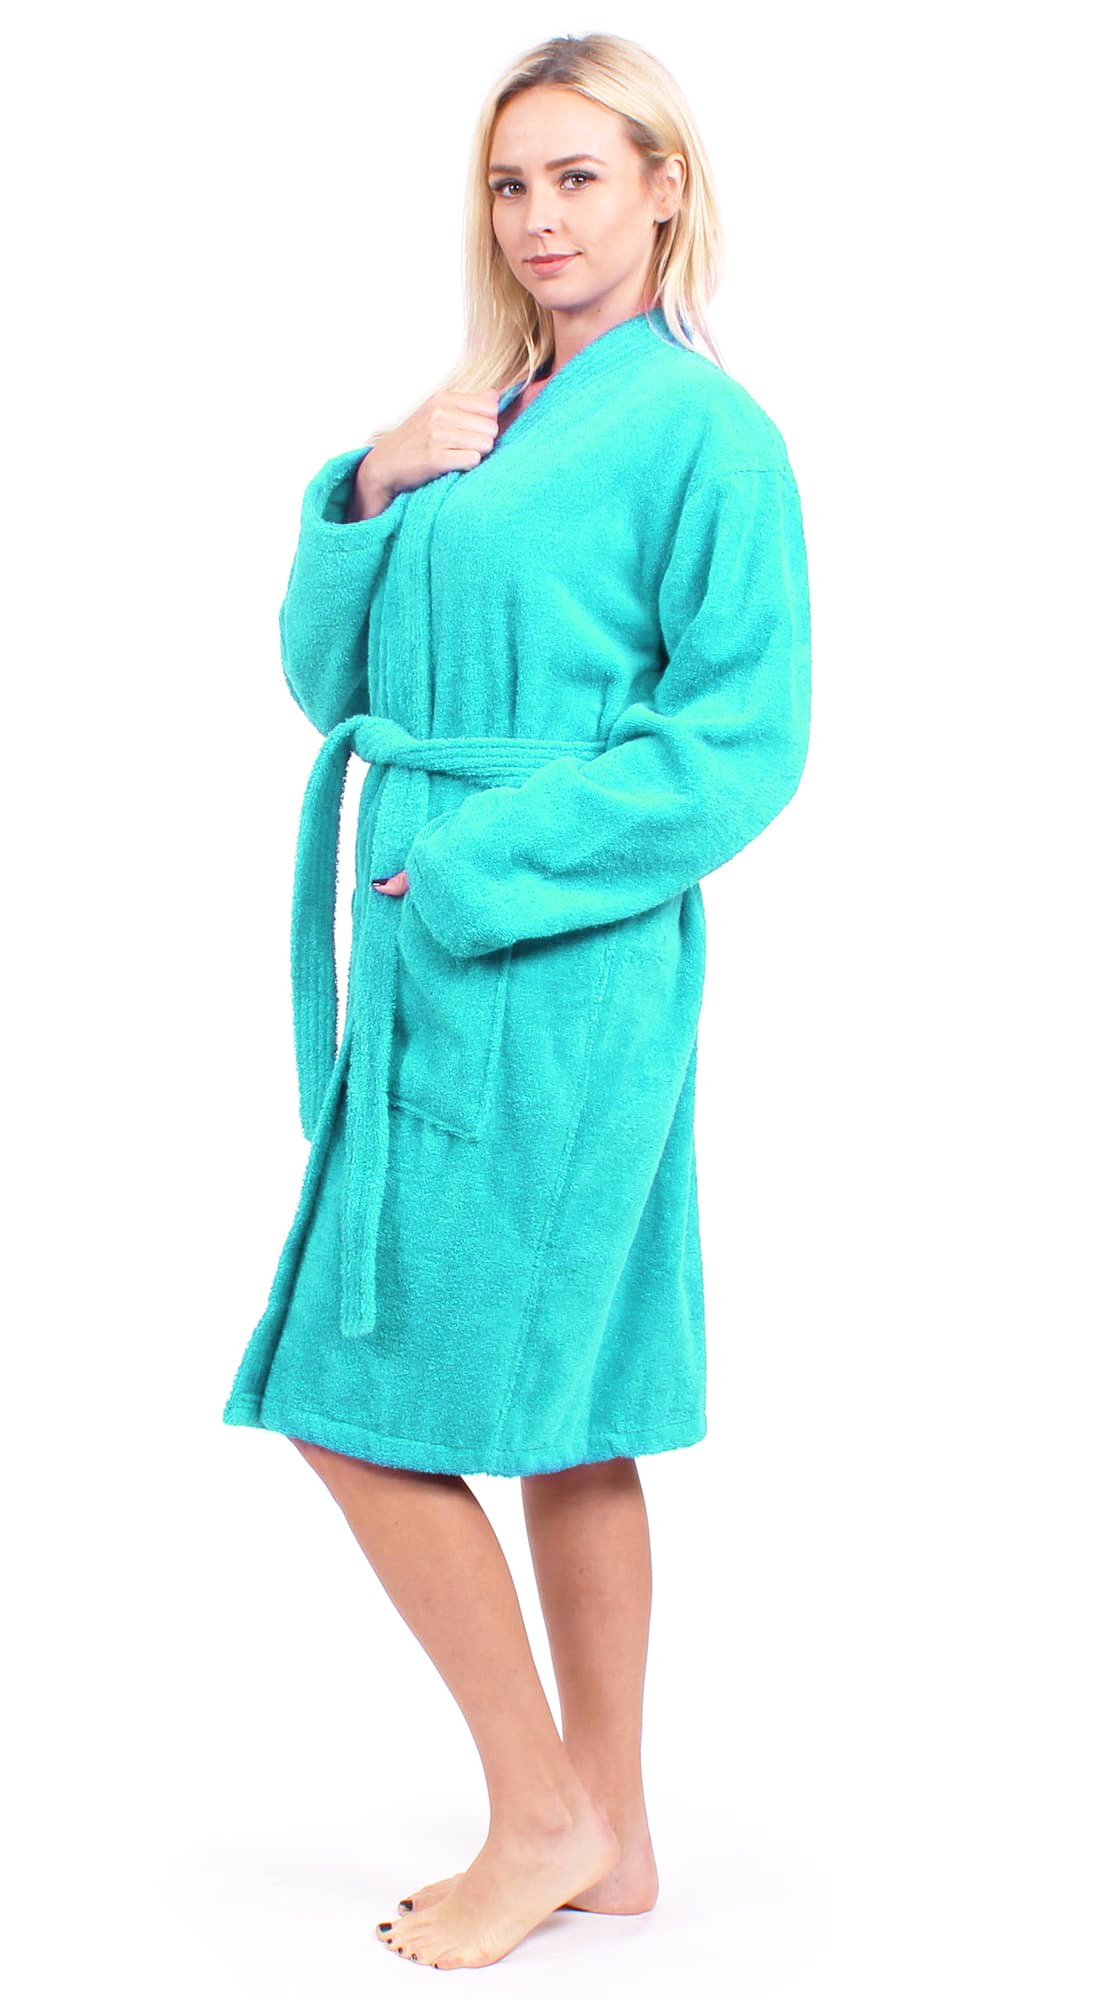 c3b48b772a Get Quotations · Turkuoise Women s Terry Cloth Robe 100% Premium Turkish  Cotton Terry Kimono Collar